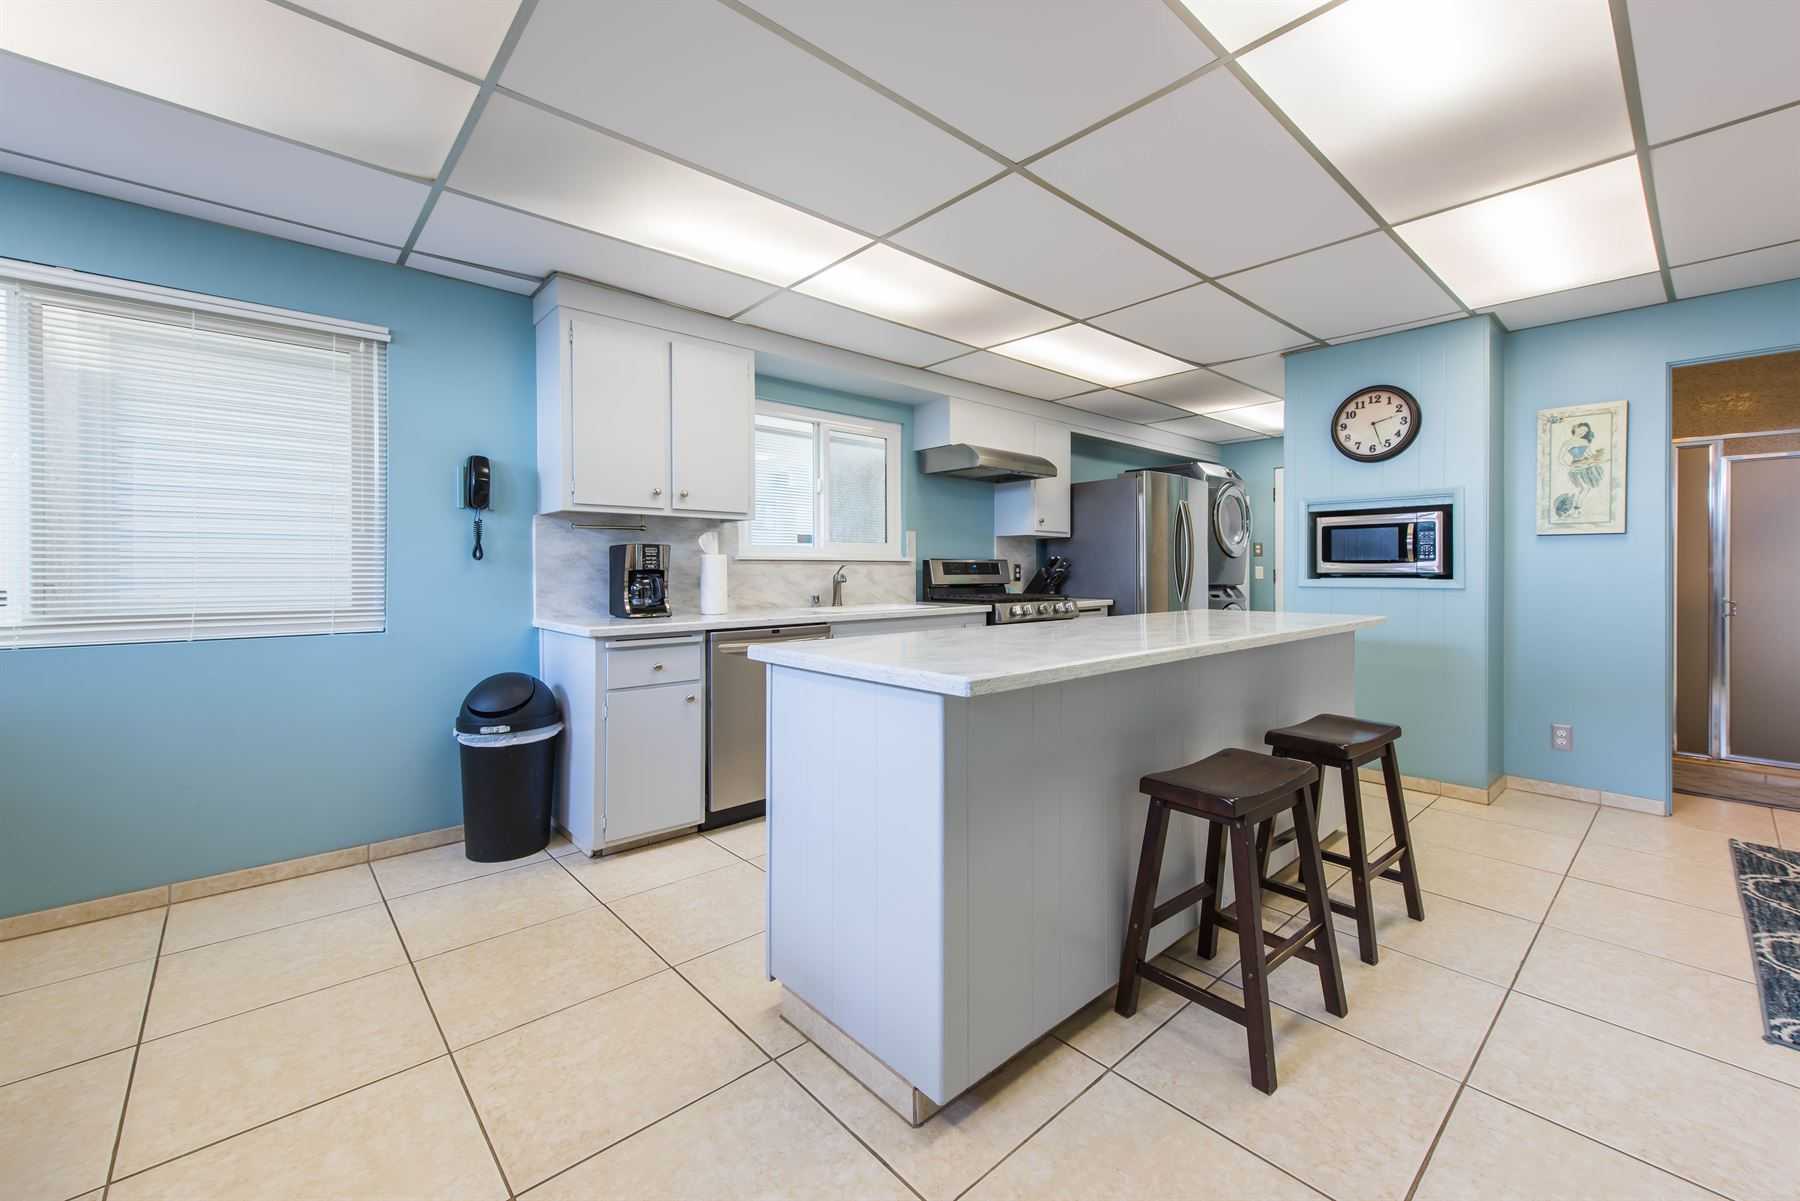 Oceanview Hideaway - Interior - Kitchen with light blue walls and island counter that has two barstools to sit at